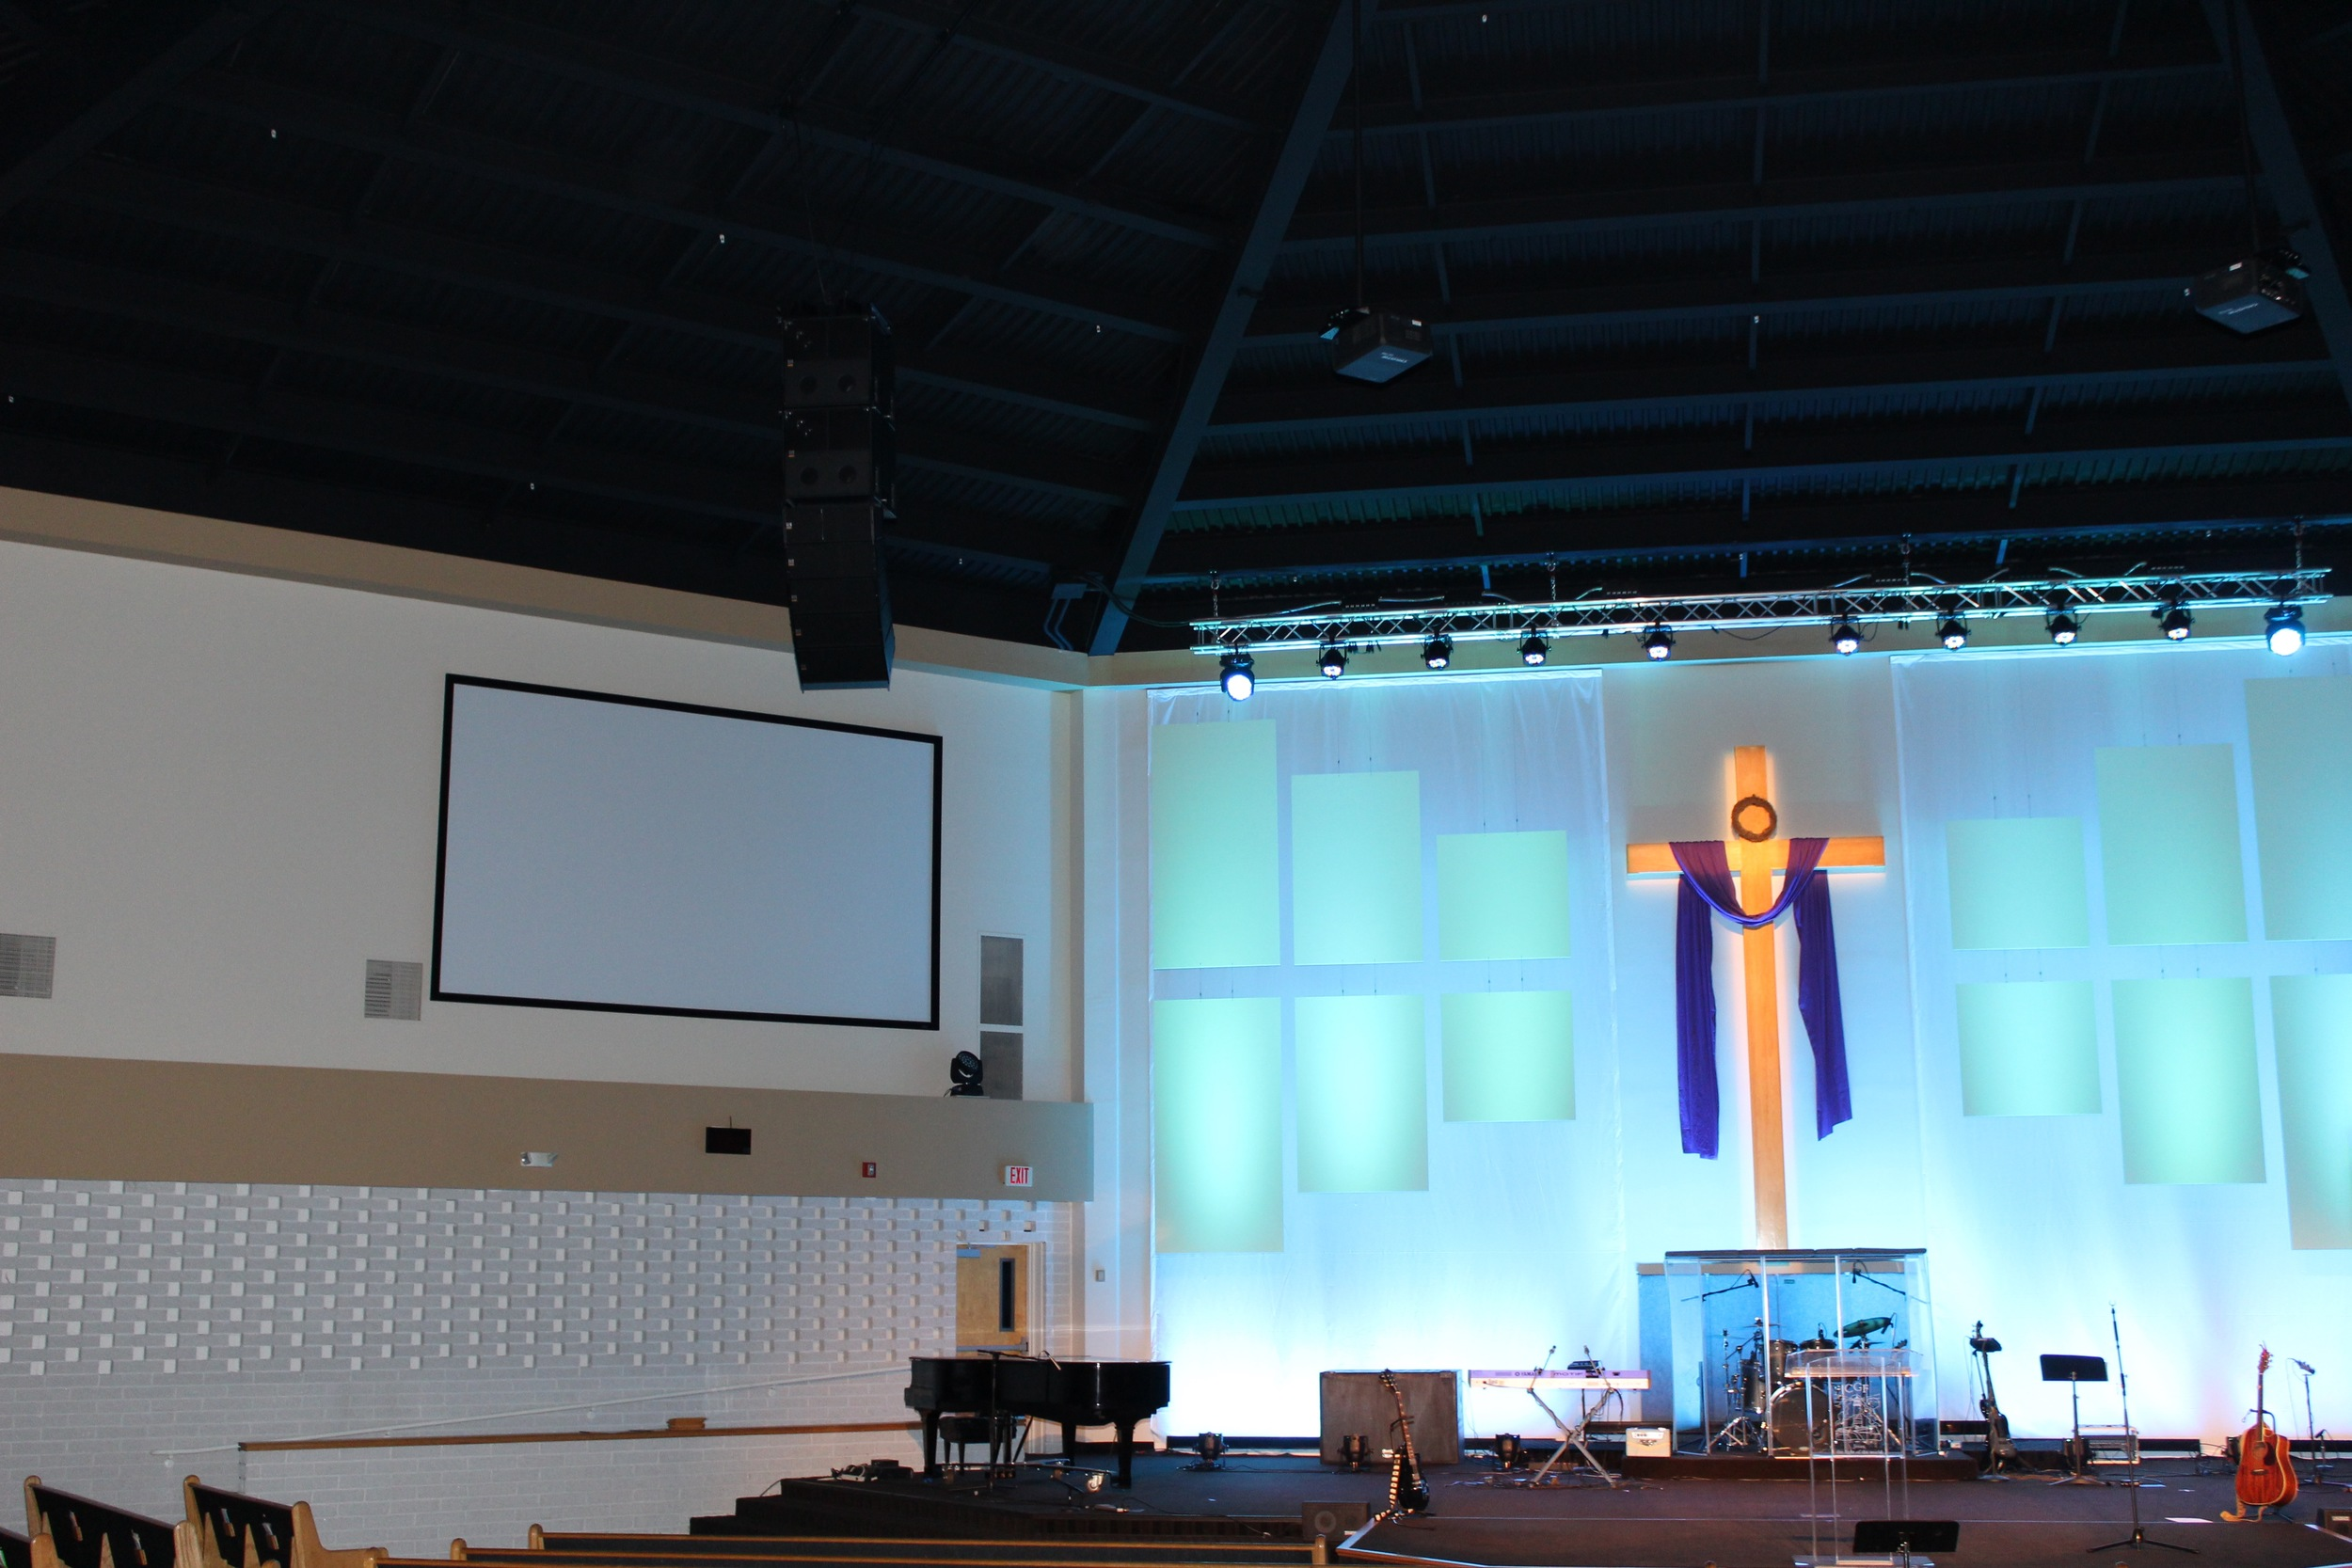 Chesapeake_Christian_Fellowship_Church_11.jpg